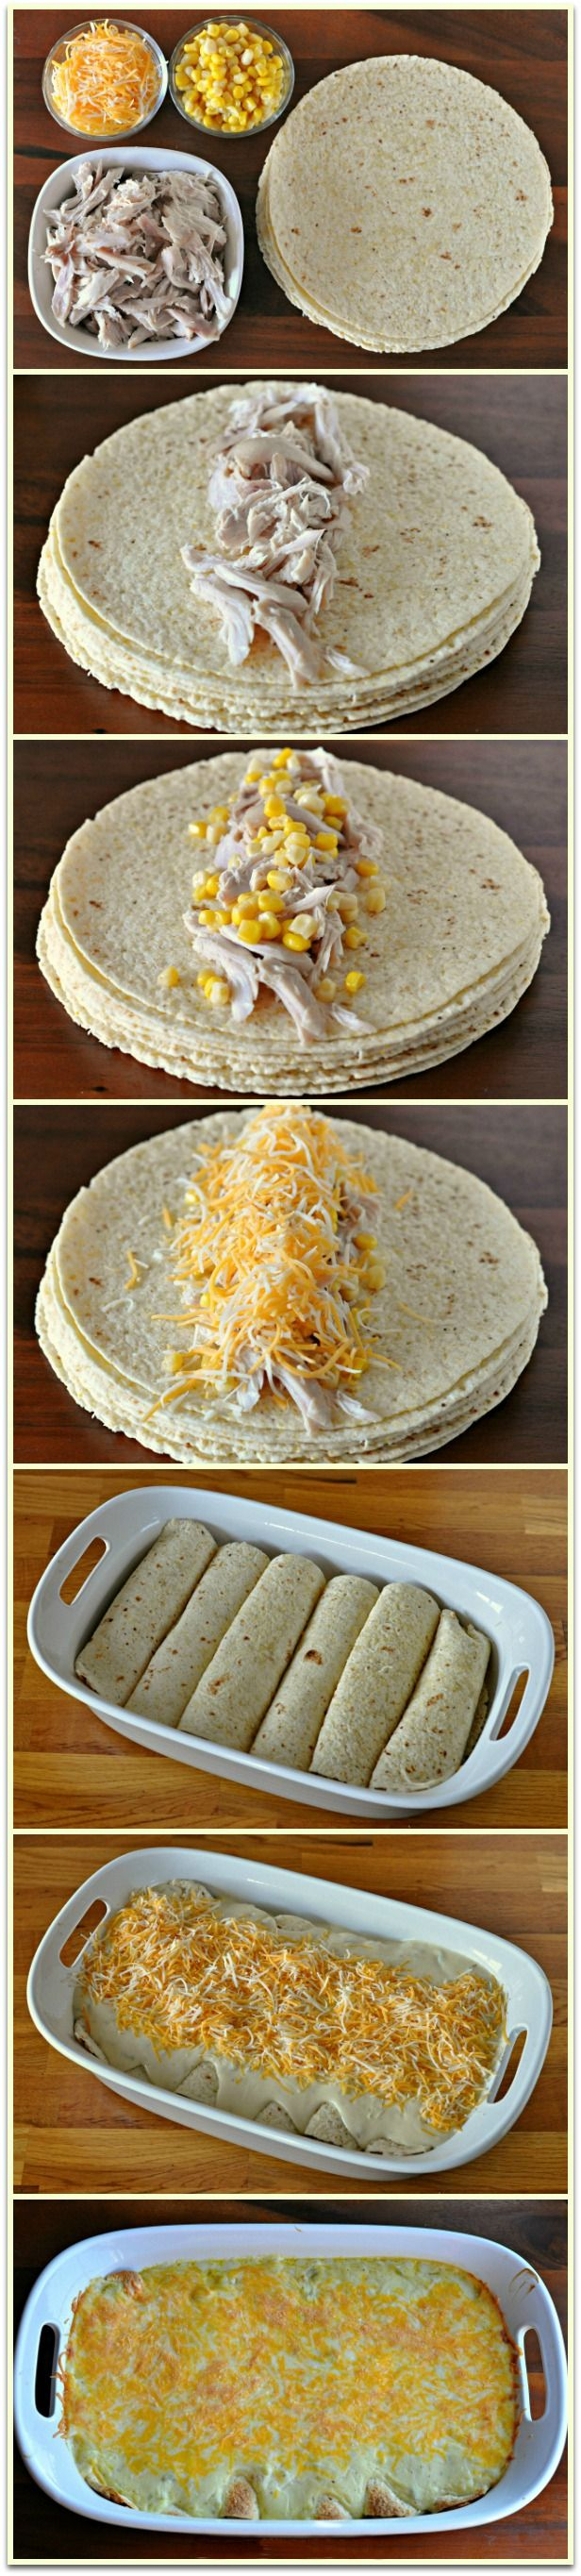 white chicken enchilada recipe..but will use flour tortillas instead of corn.